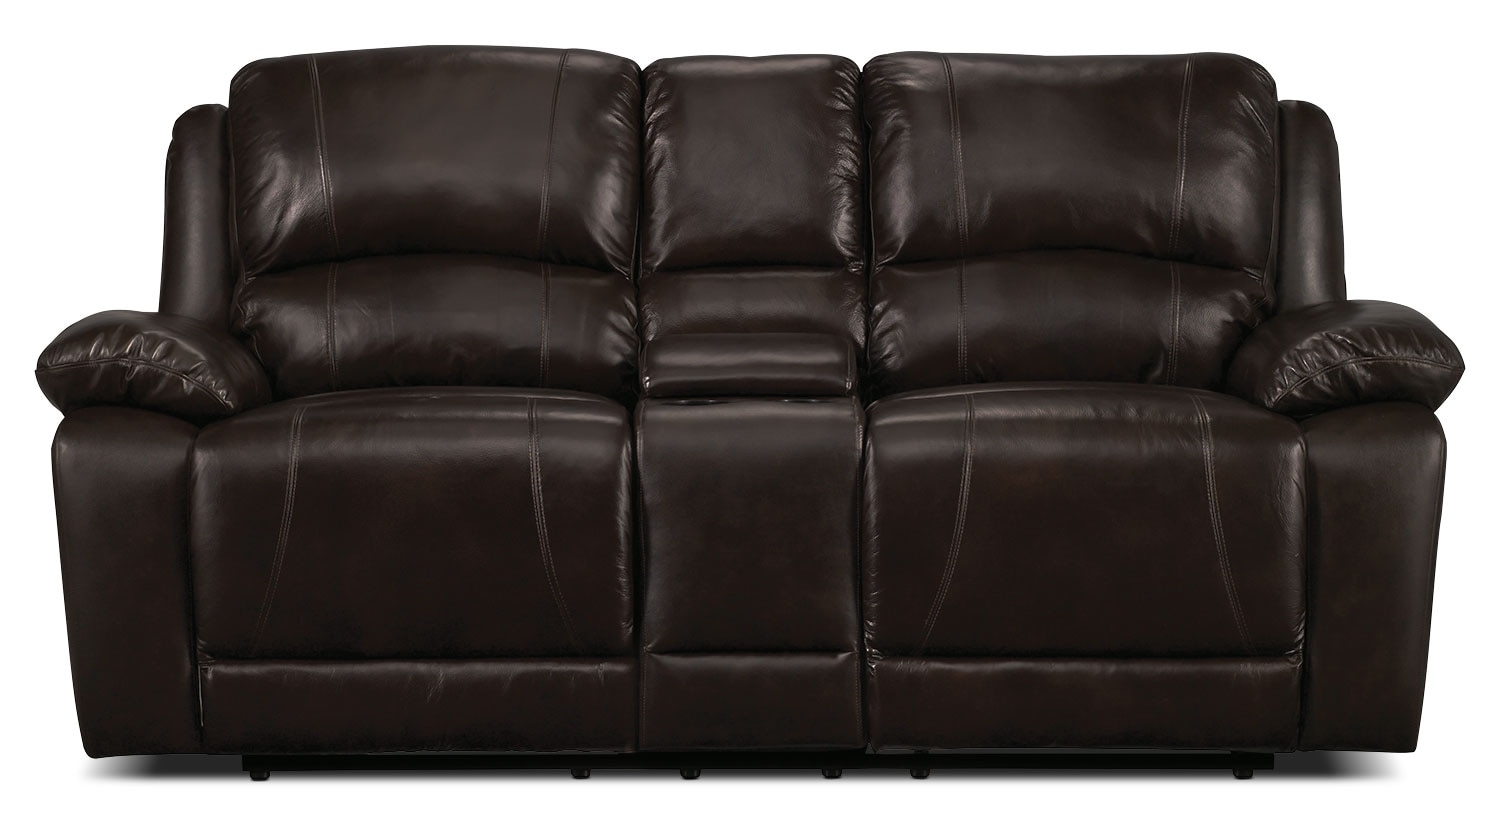 Marco Genuine Leather Reclining Loveseat - Chocolate